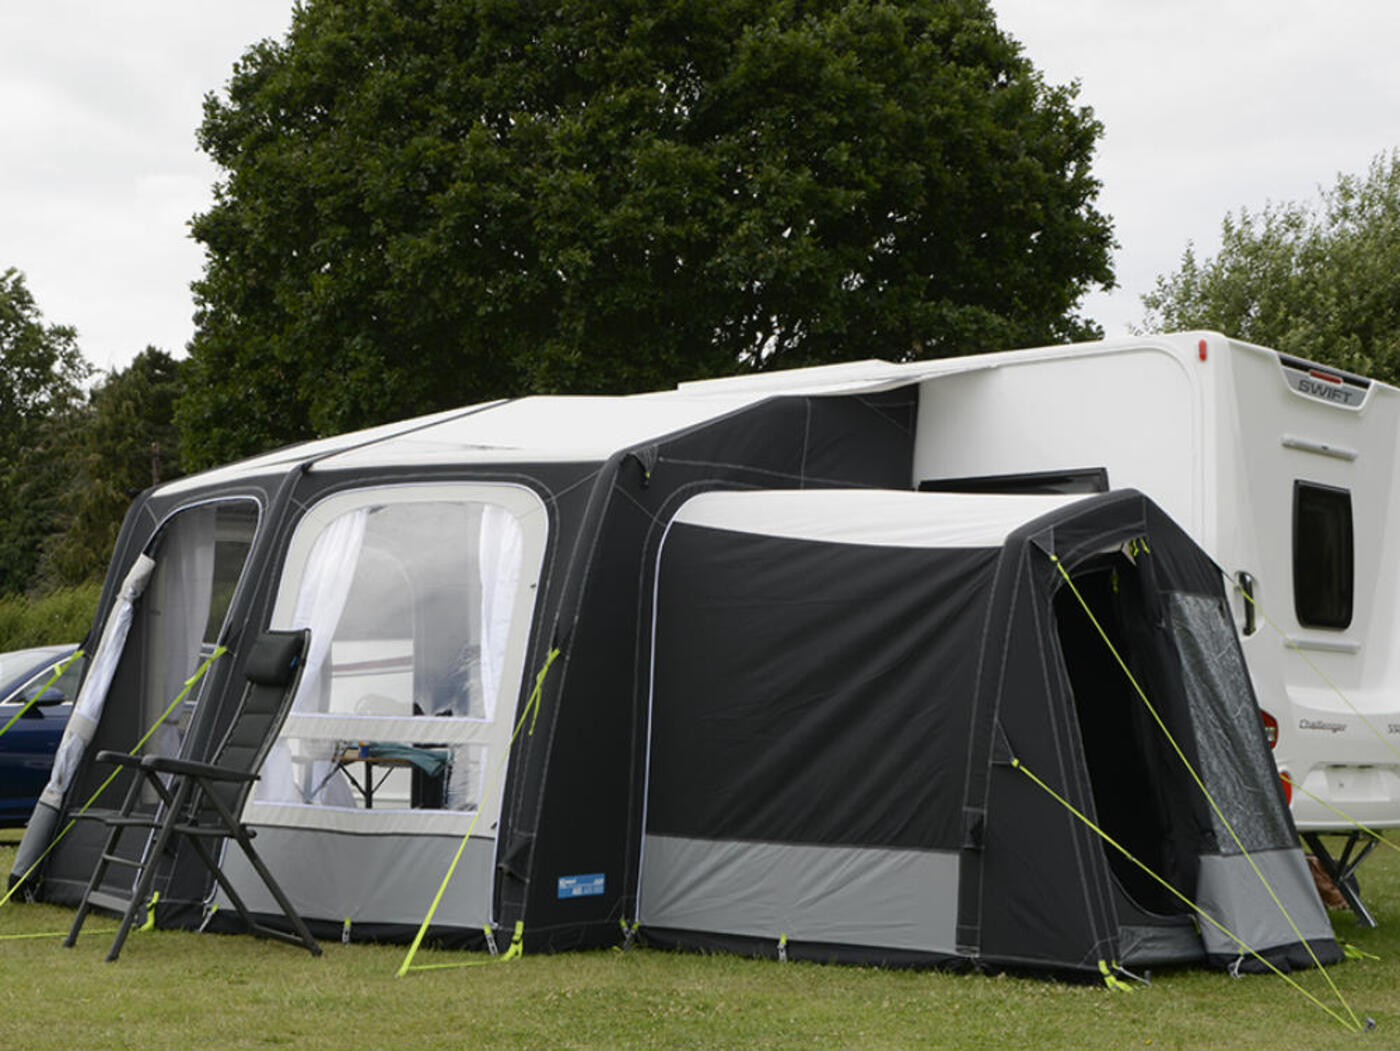 Accessory Shop Awnings & Accessories Annexe & Inner Tents